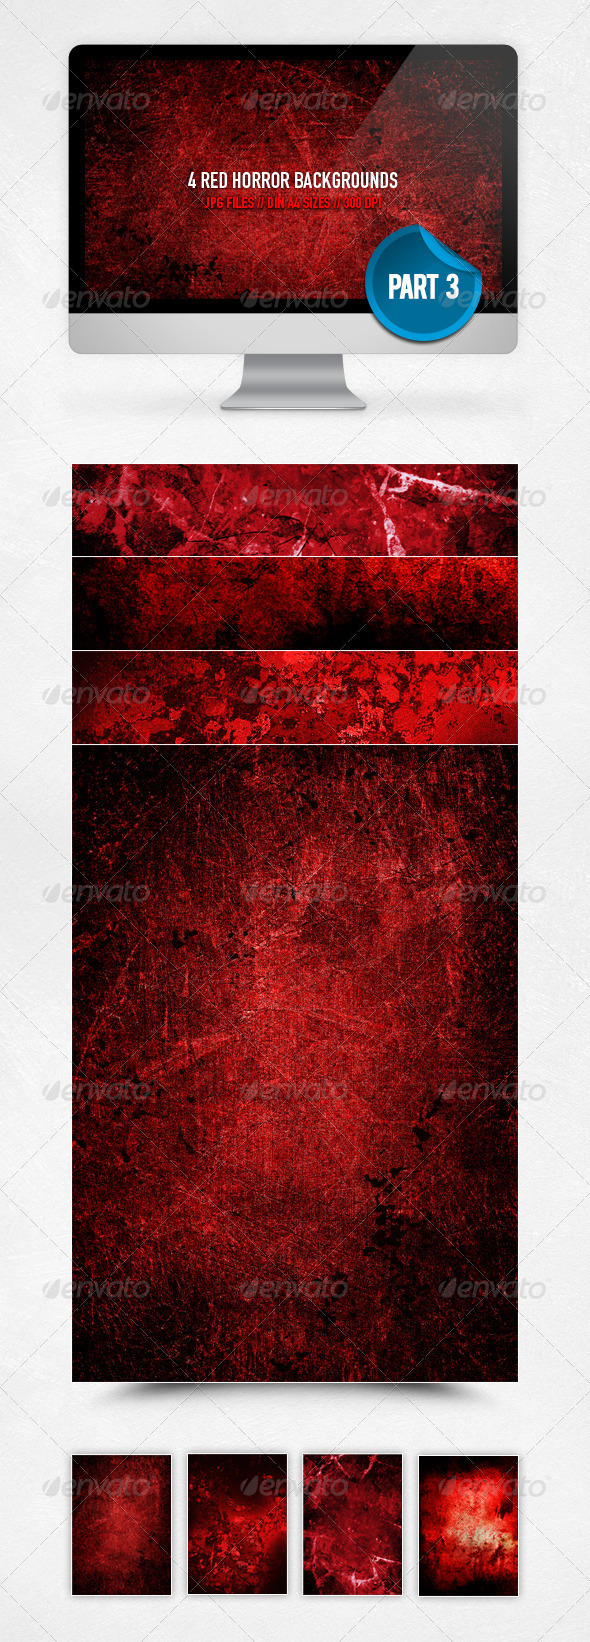 Red Horror Backgrounds - Part 3 - Miscellaneous Backgrounds